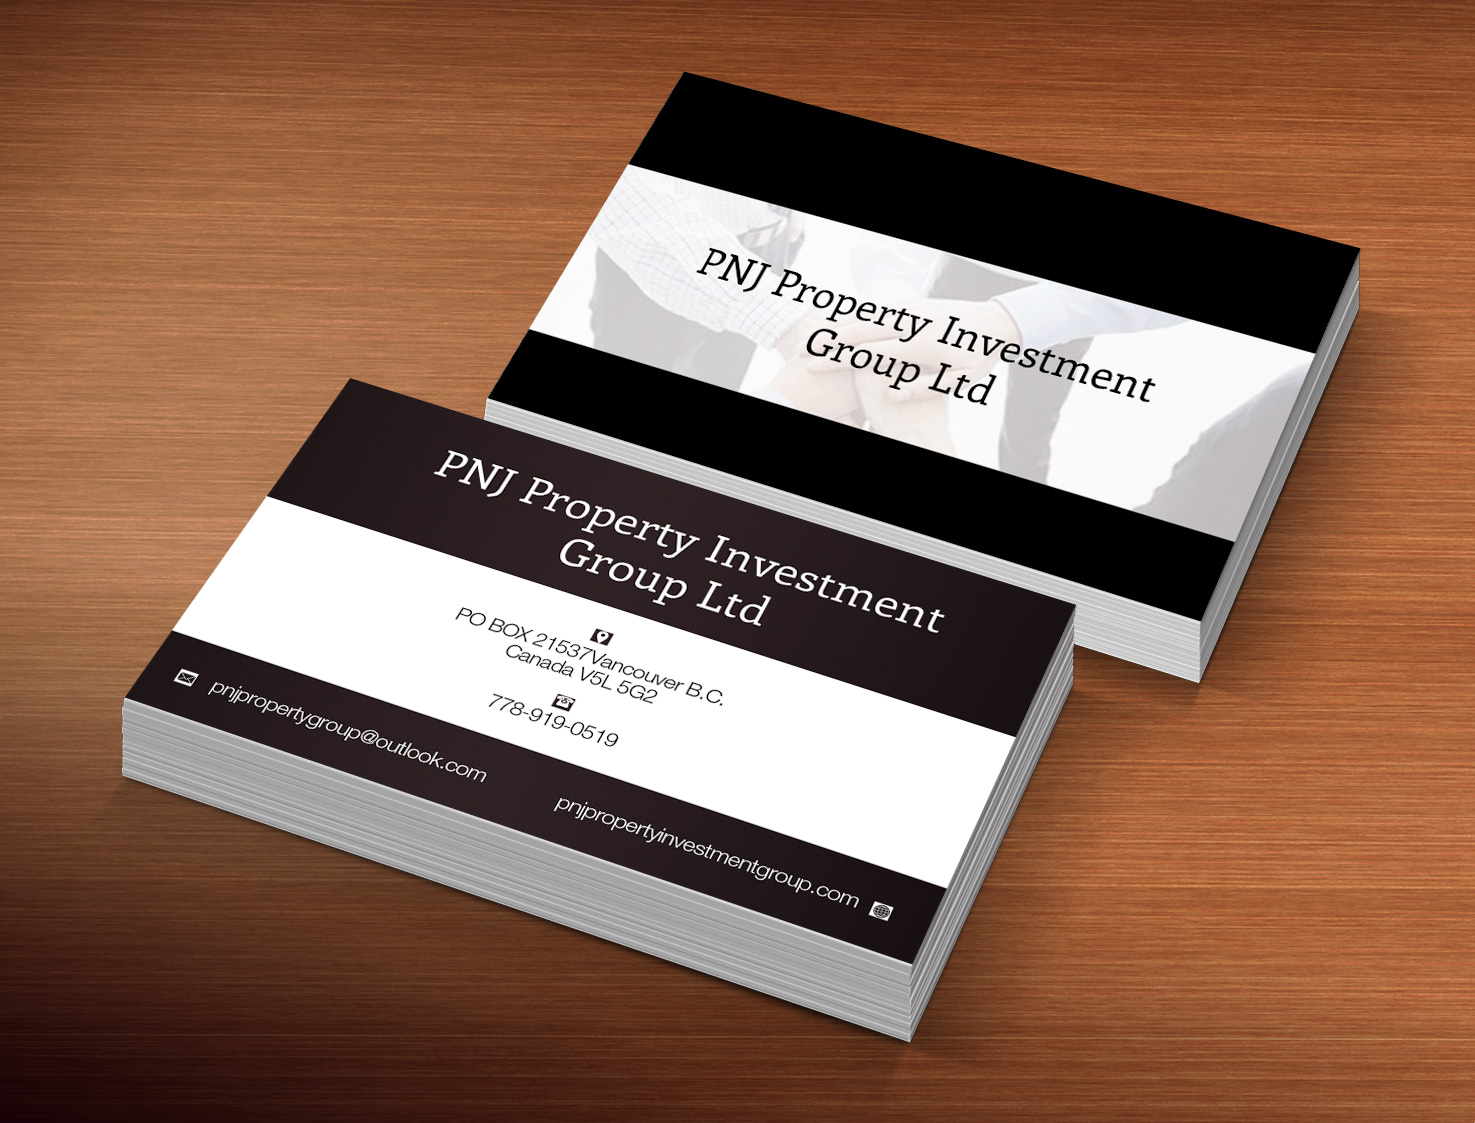 Business Card Design For Pnj Property Investment Group Ltd By